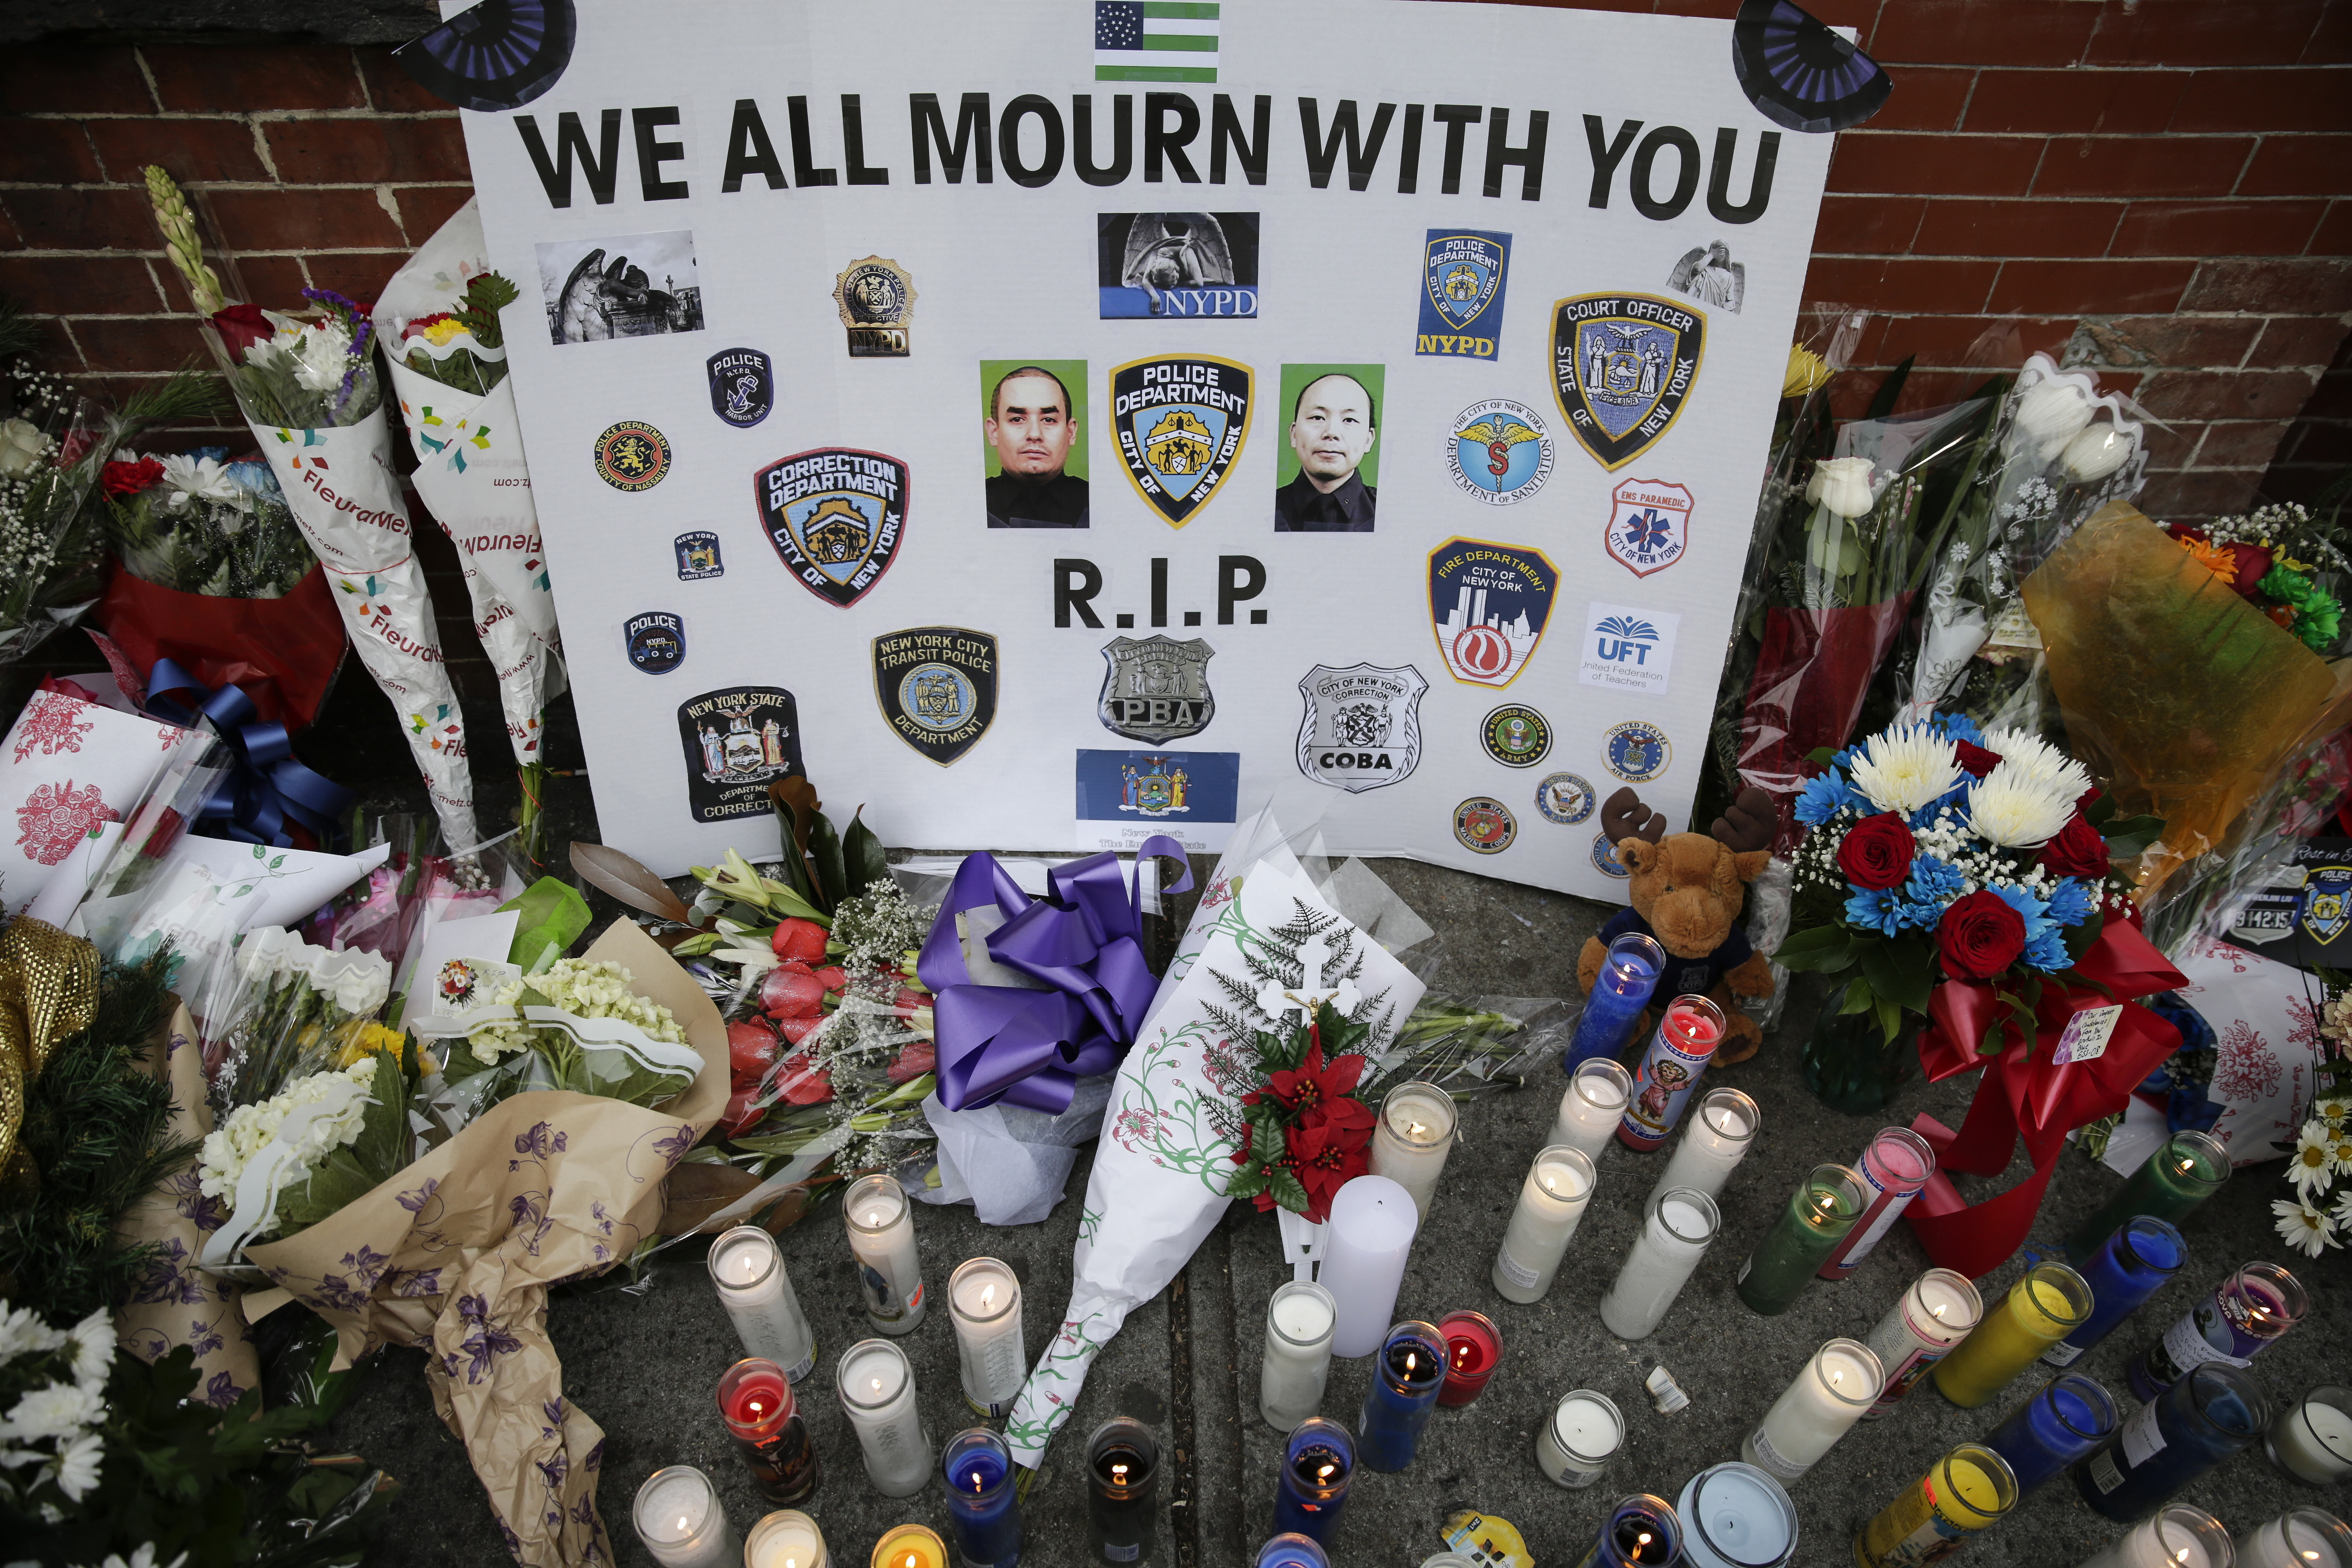 A view of the memorial for slain NYPD officers, Wenjian Liu and Rafael Ramos, on Tompkins Ave. and Myrtle Ave. where two officers were murdered, in Brooklyn, N.Y. on Dec. 22, 2014.